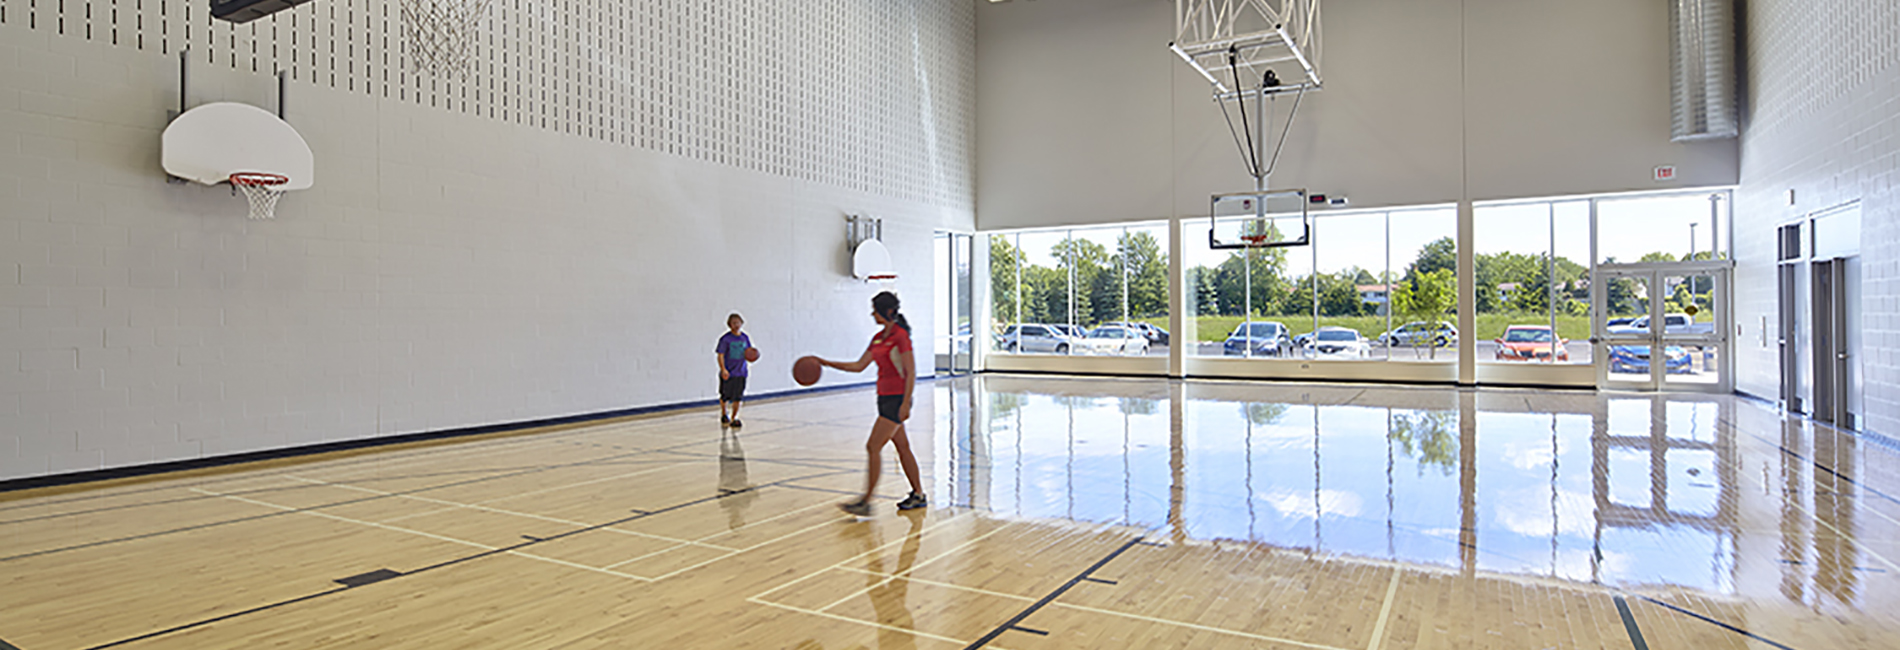 People playing basketball in the gymnasium. Photo credit: CS&P Architects